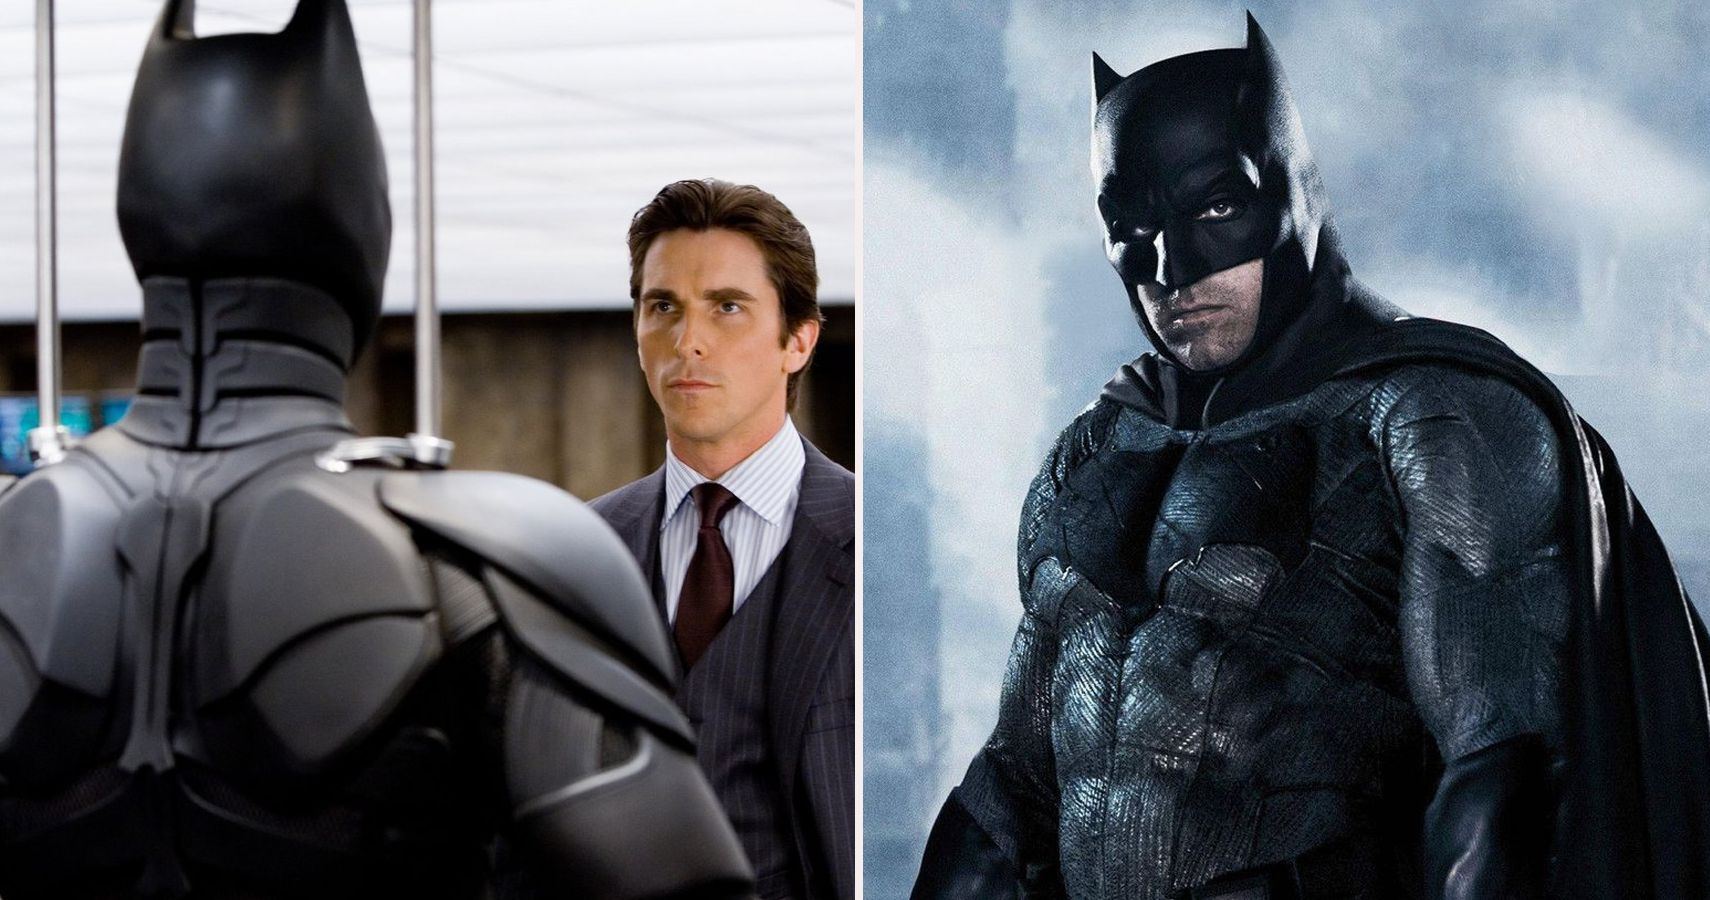 10 Things You Never Knew About Batman's Bat-Suit | ScreenRant